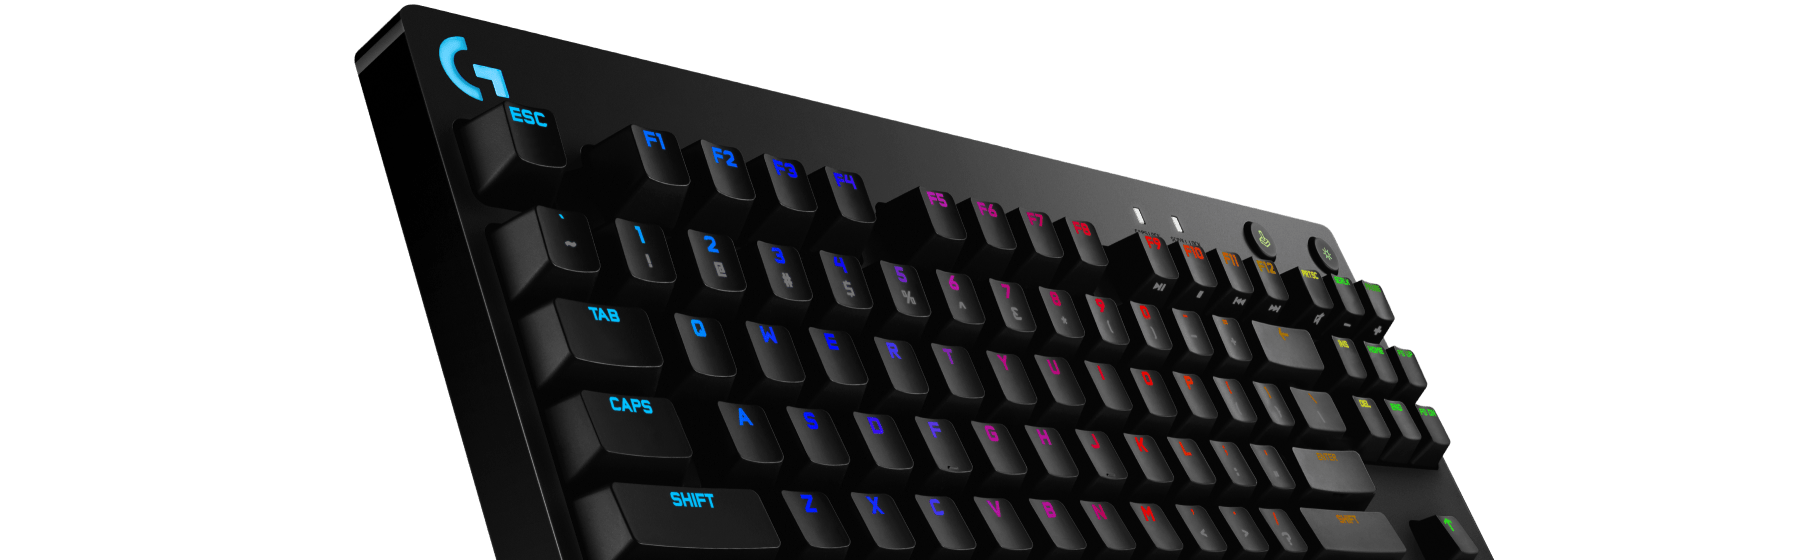 Pro Mechanical Gaming Keyboard